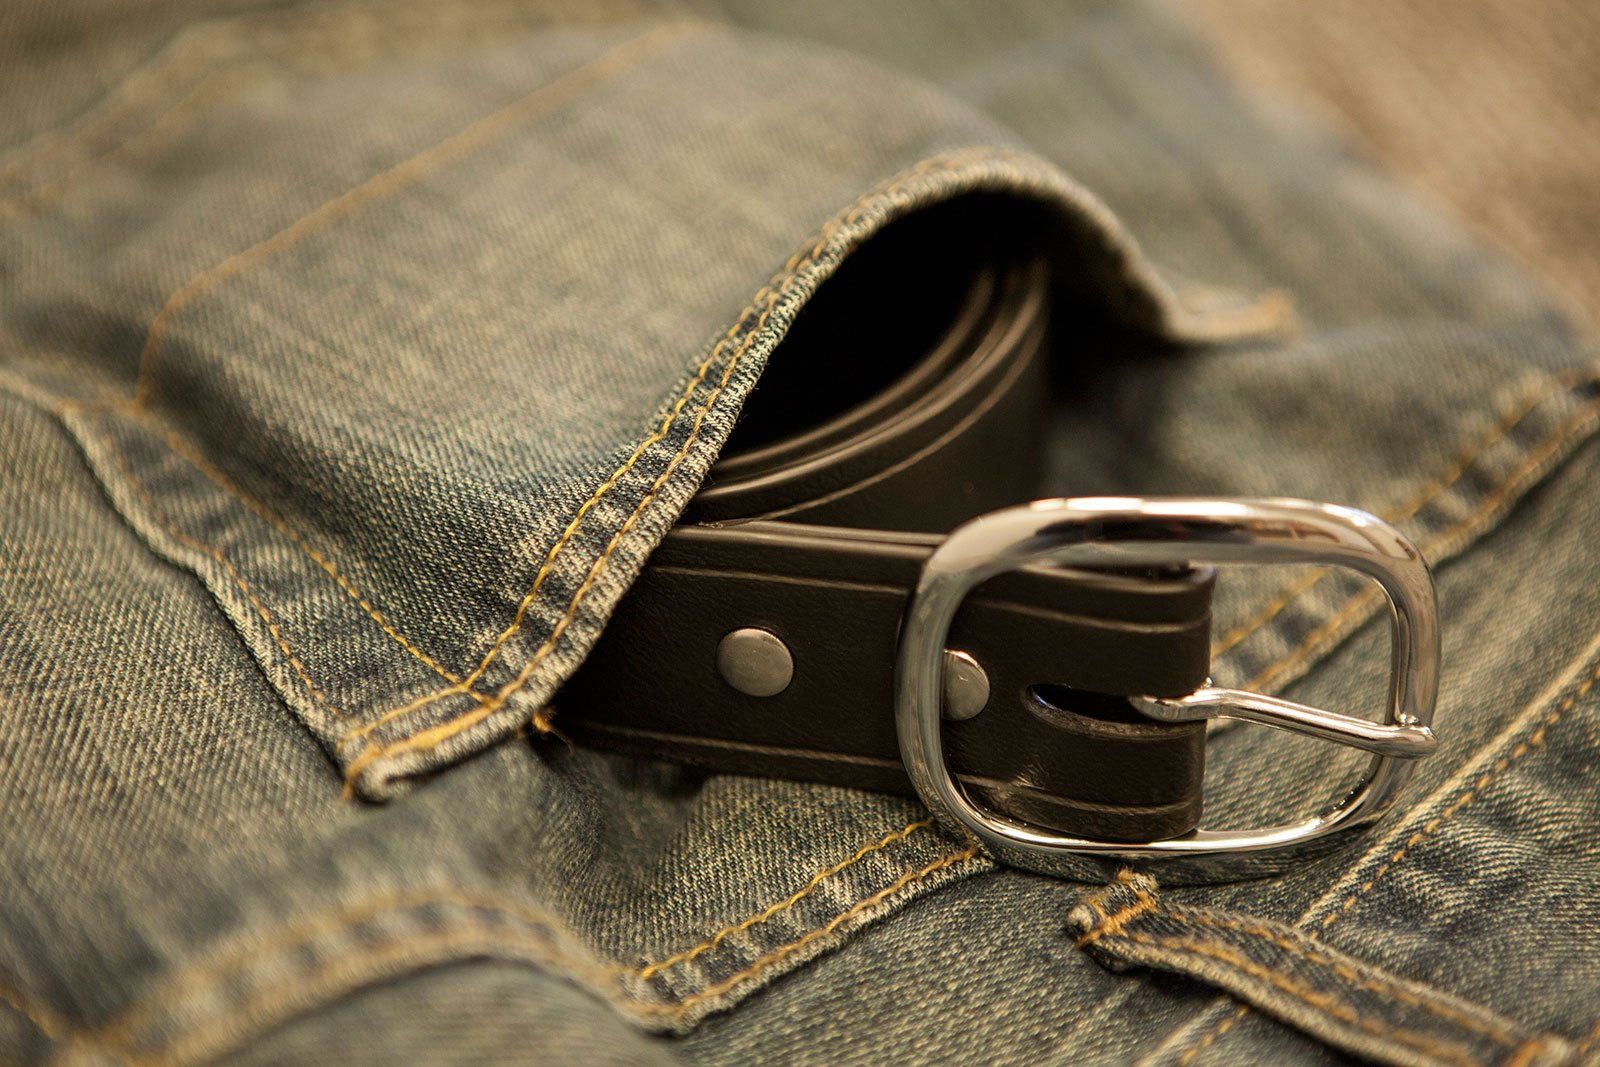 The Indestructible Super Belt Looks great with Jeans or any Pants Better than Leather Will Never Stretch or Break